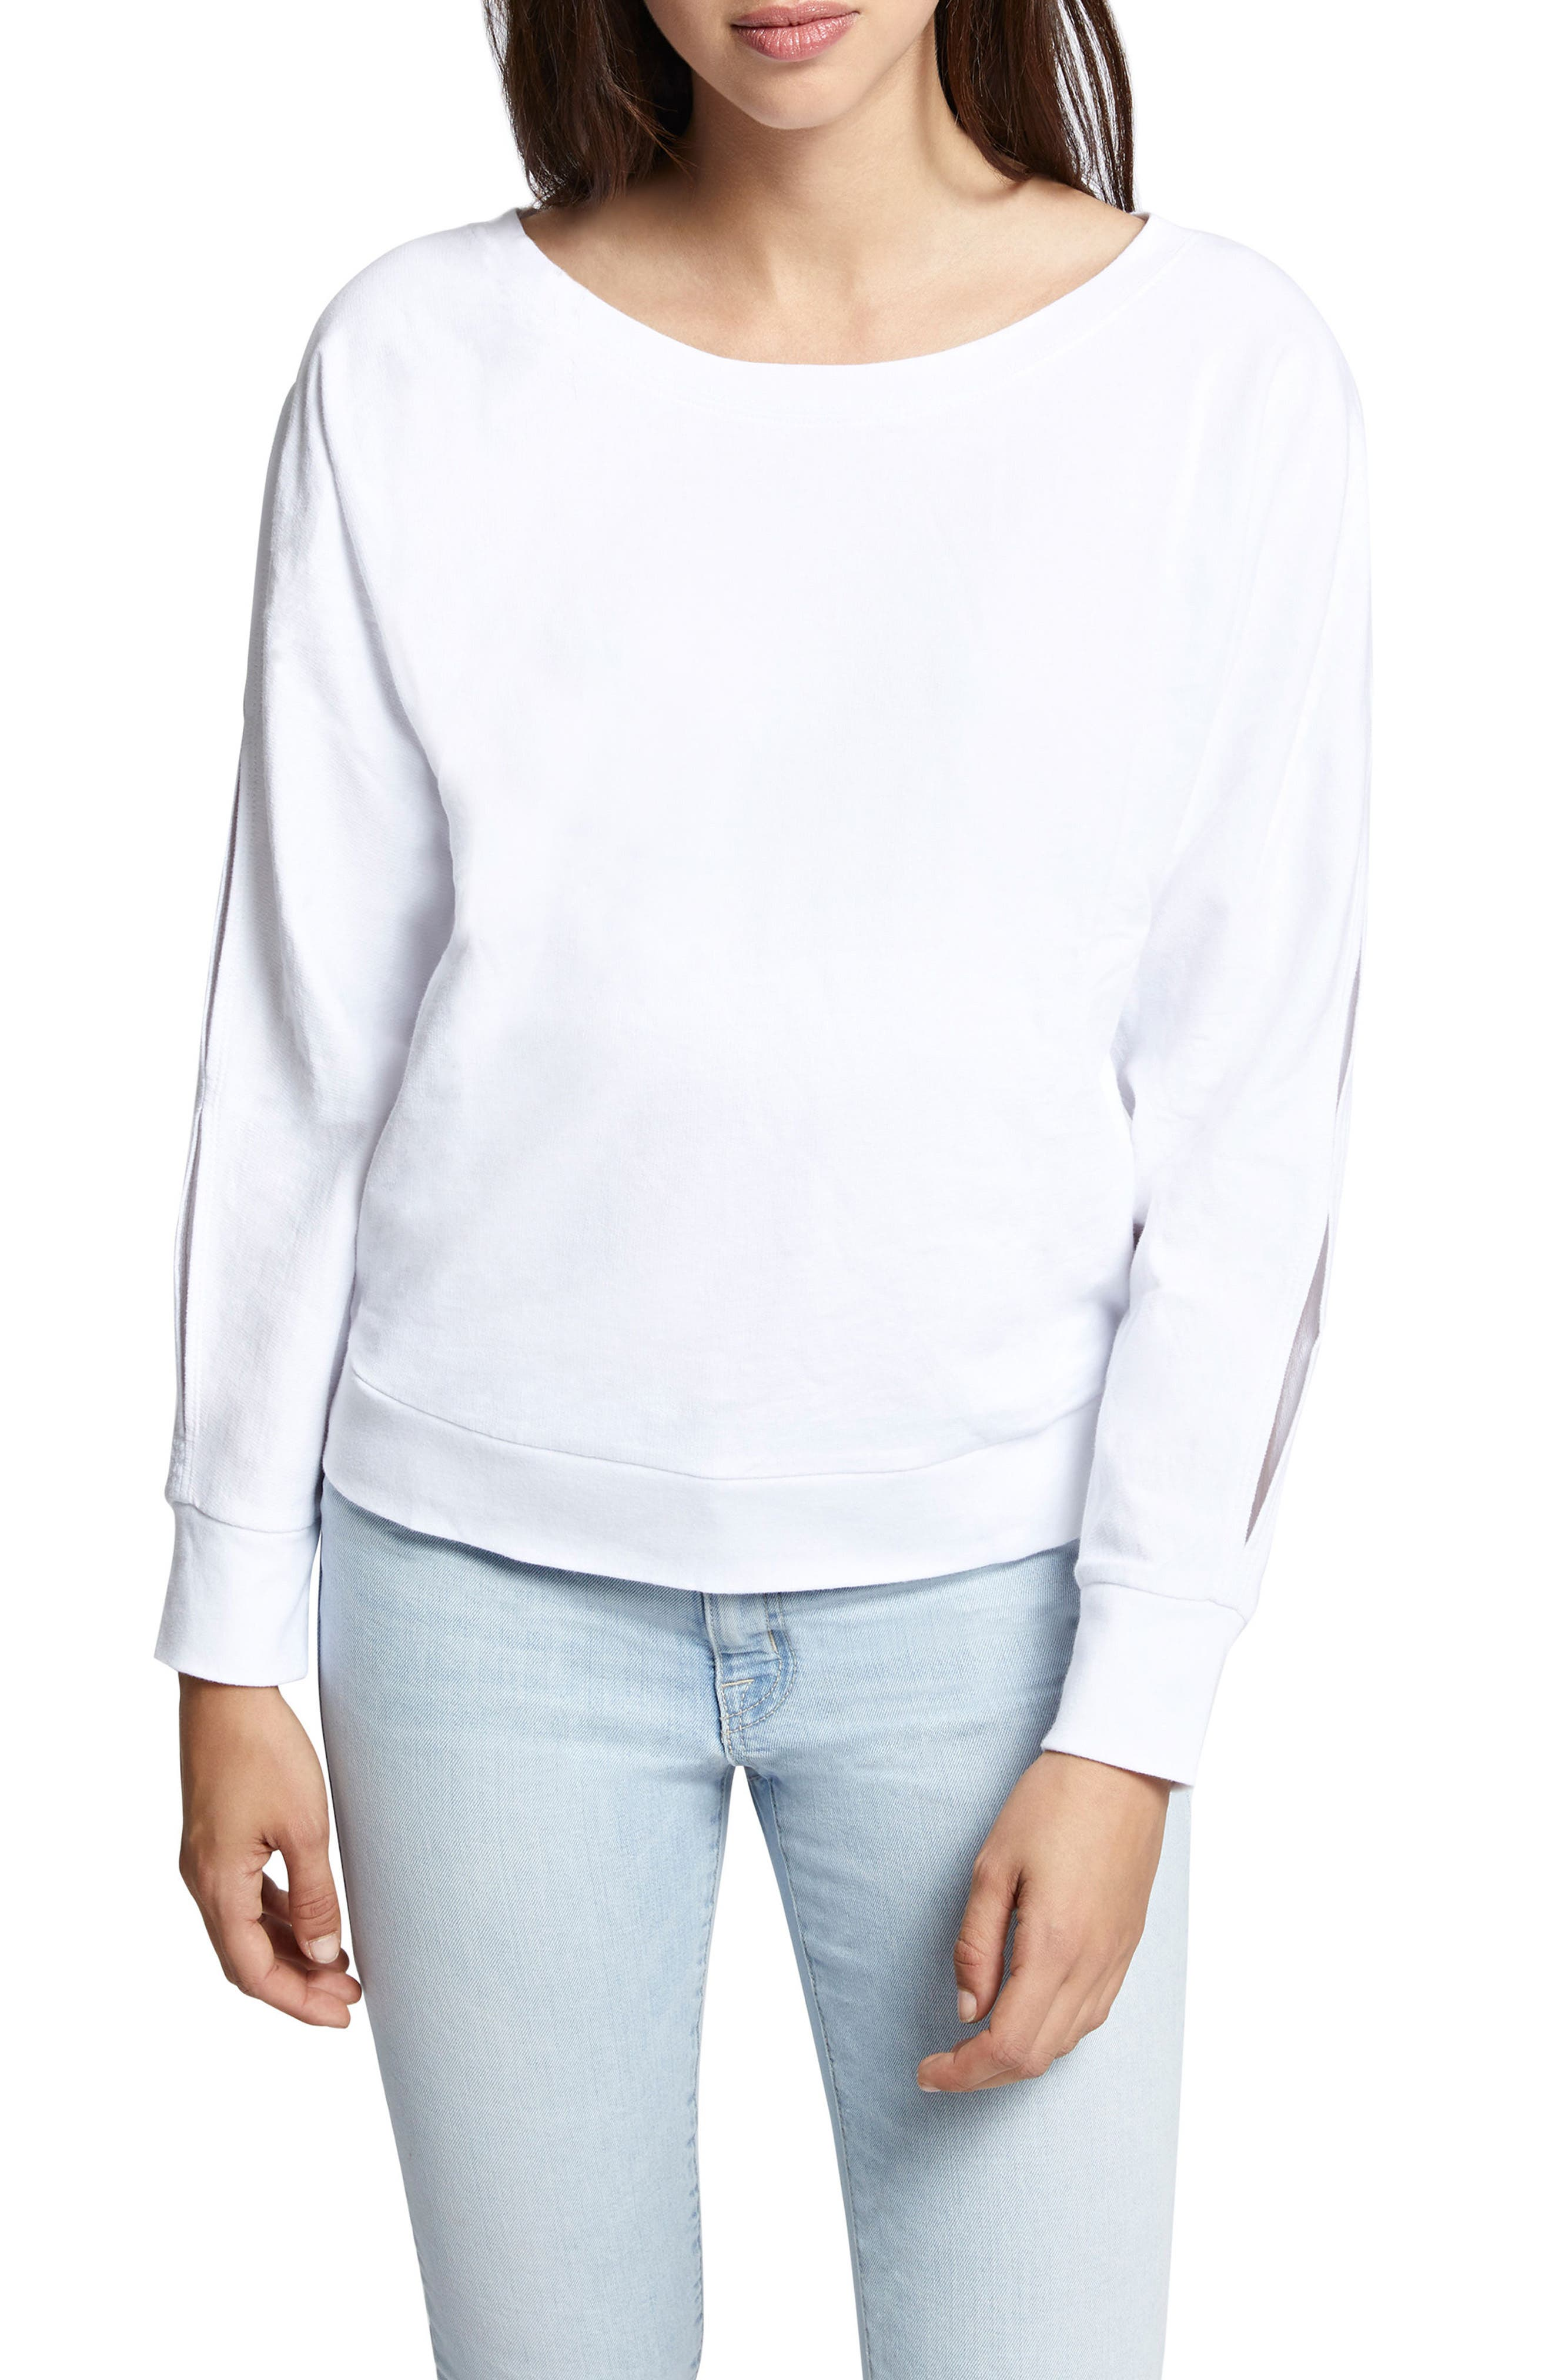 Chill Out Sweatshirt,                             Main thumbnail 1, color,                             White